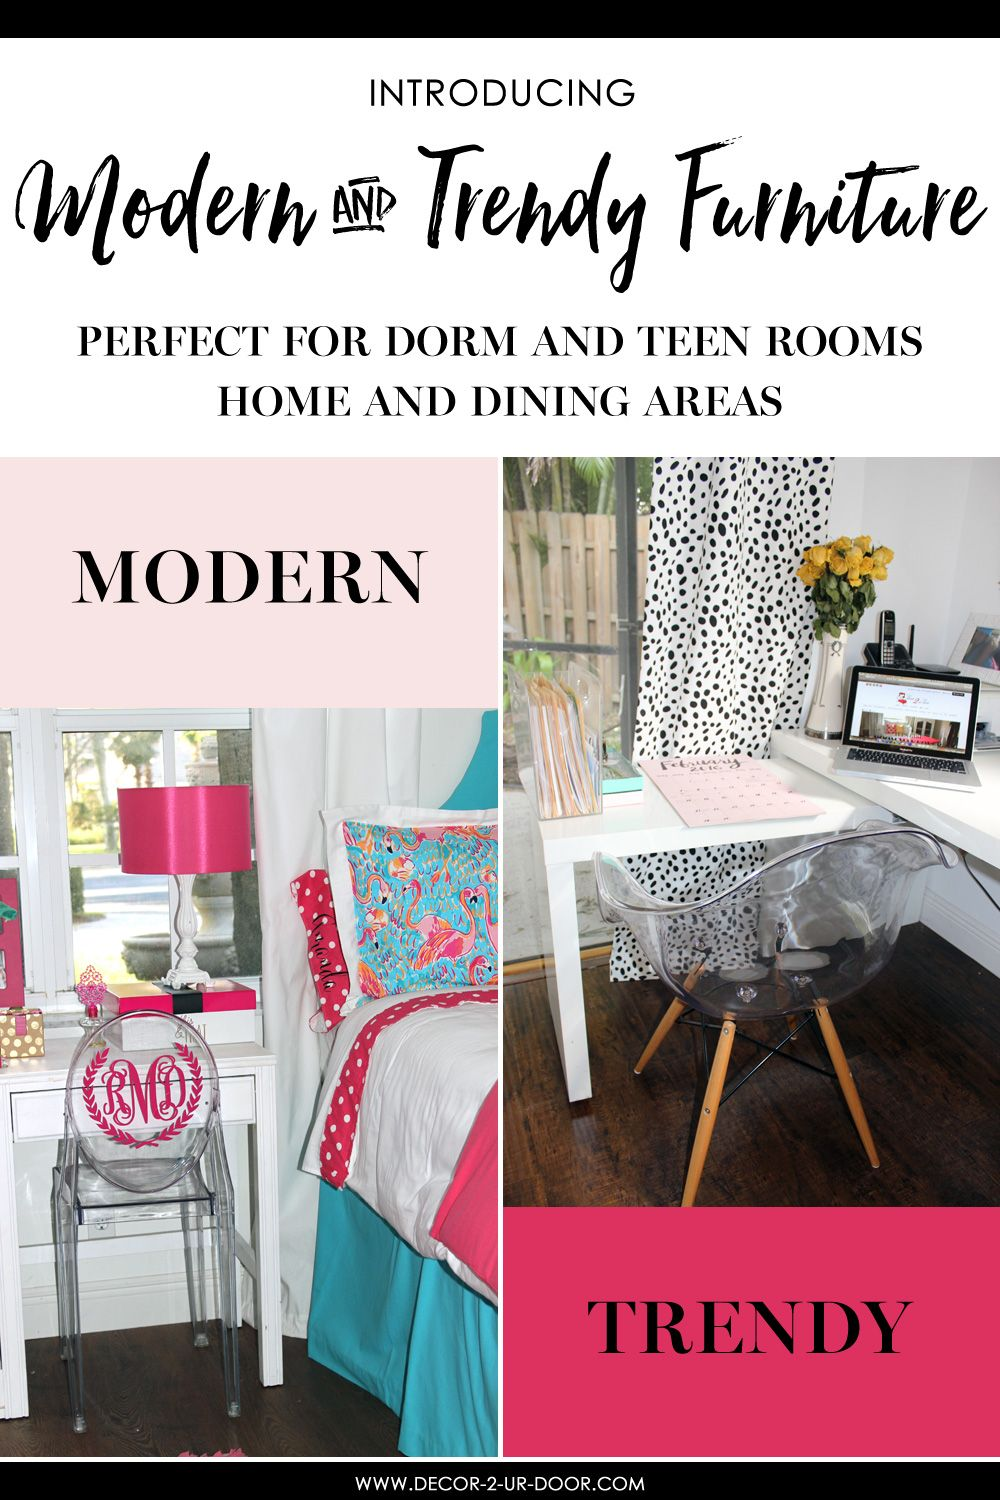 Beau Modern Dorm Room Furniture. Add Additional Seating To Your Tiny Dorm Room  With These Monogram Acrylic Chairs.